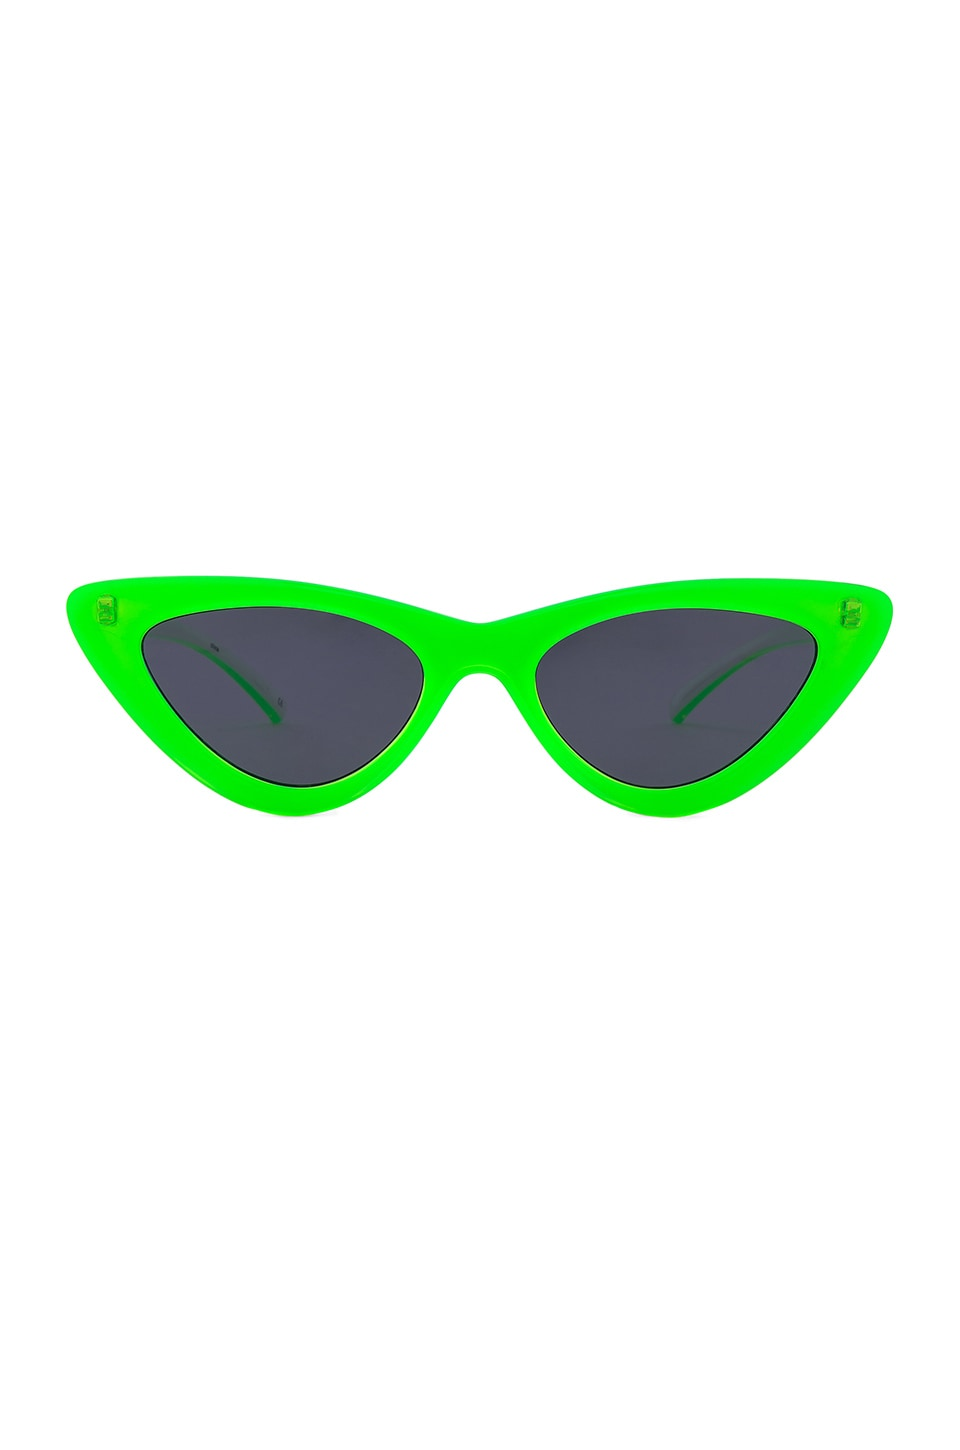 Le Specs x Adam Selman The Last Lolita in Neon Lime & Smoke Mono